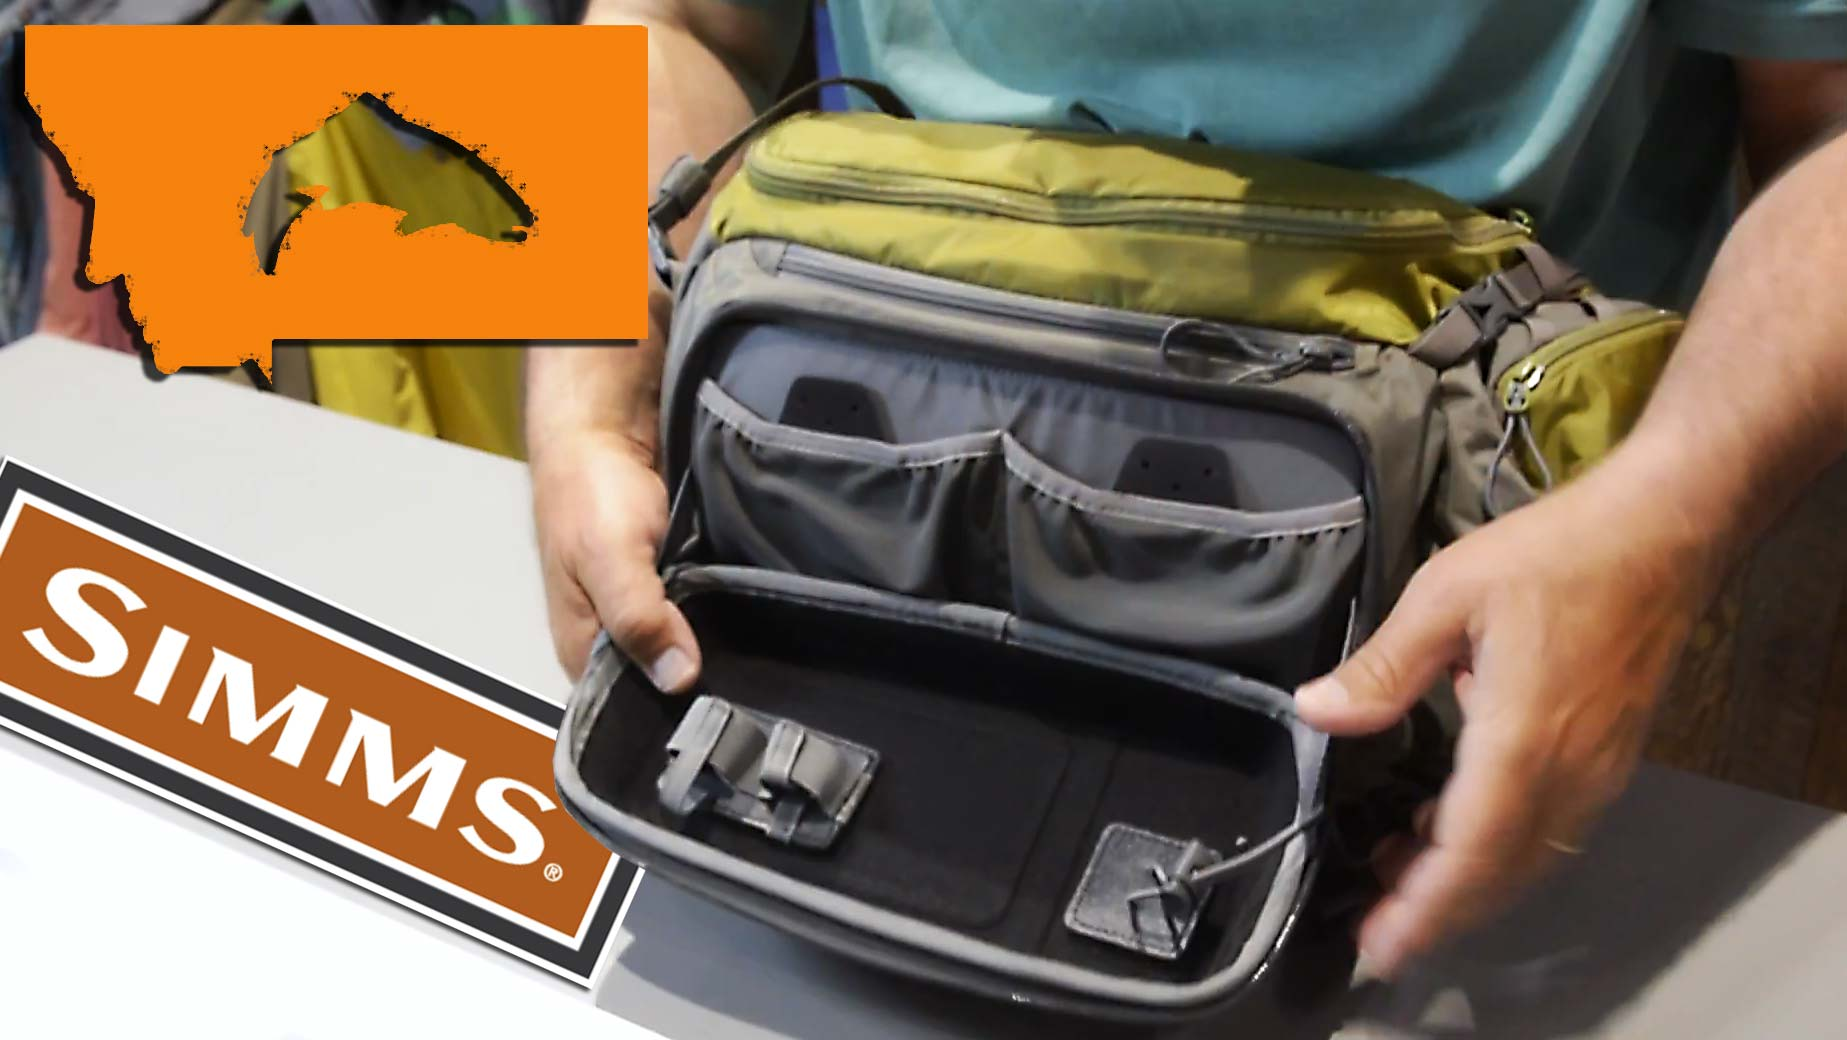 New waypoints packs from simms fly fishing gink and for Simms fishing jobs